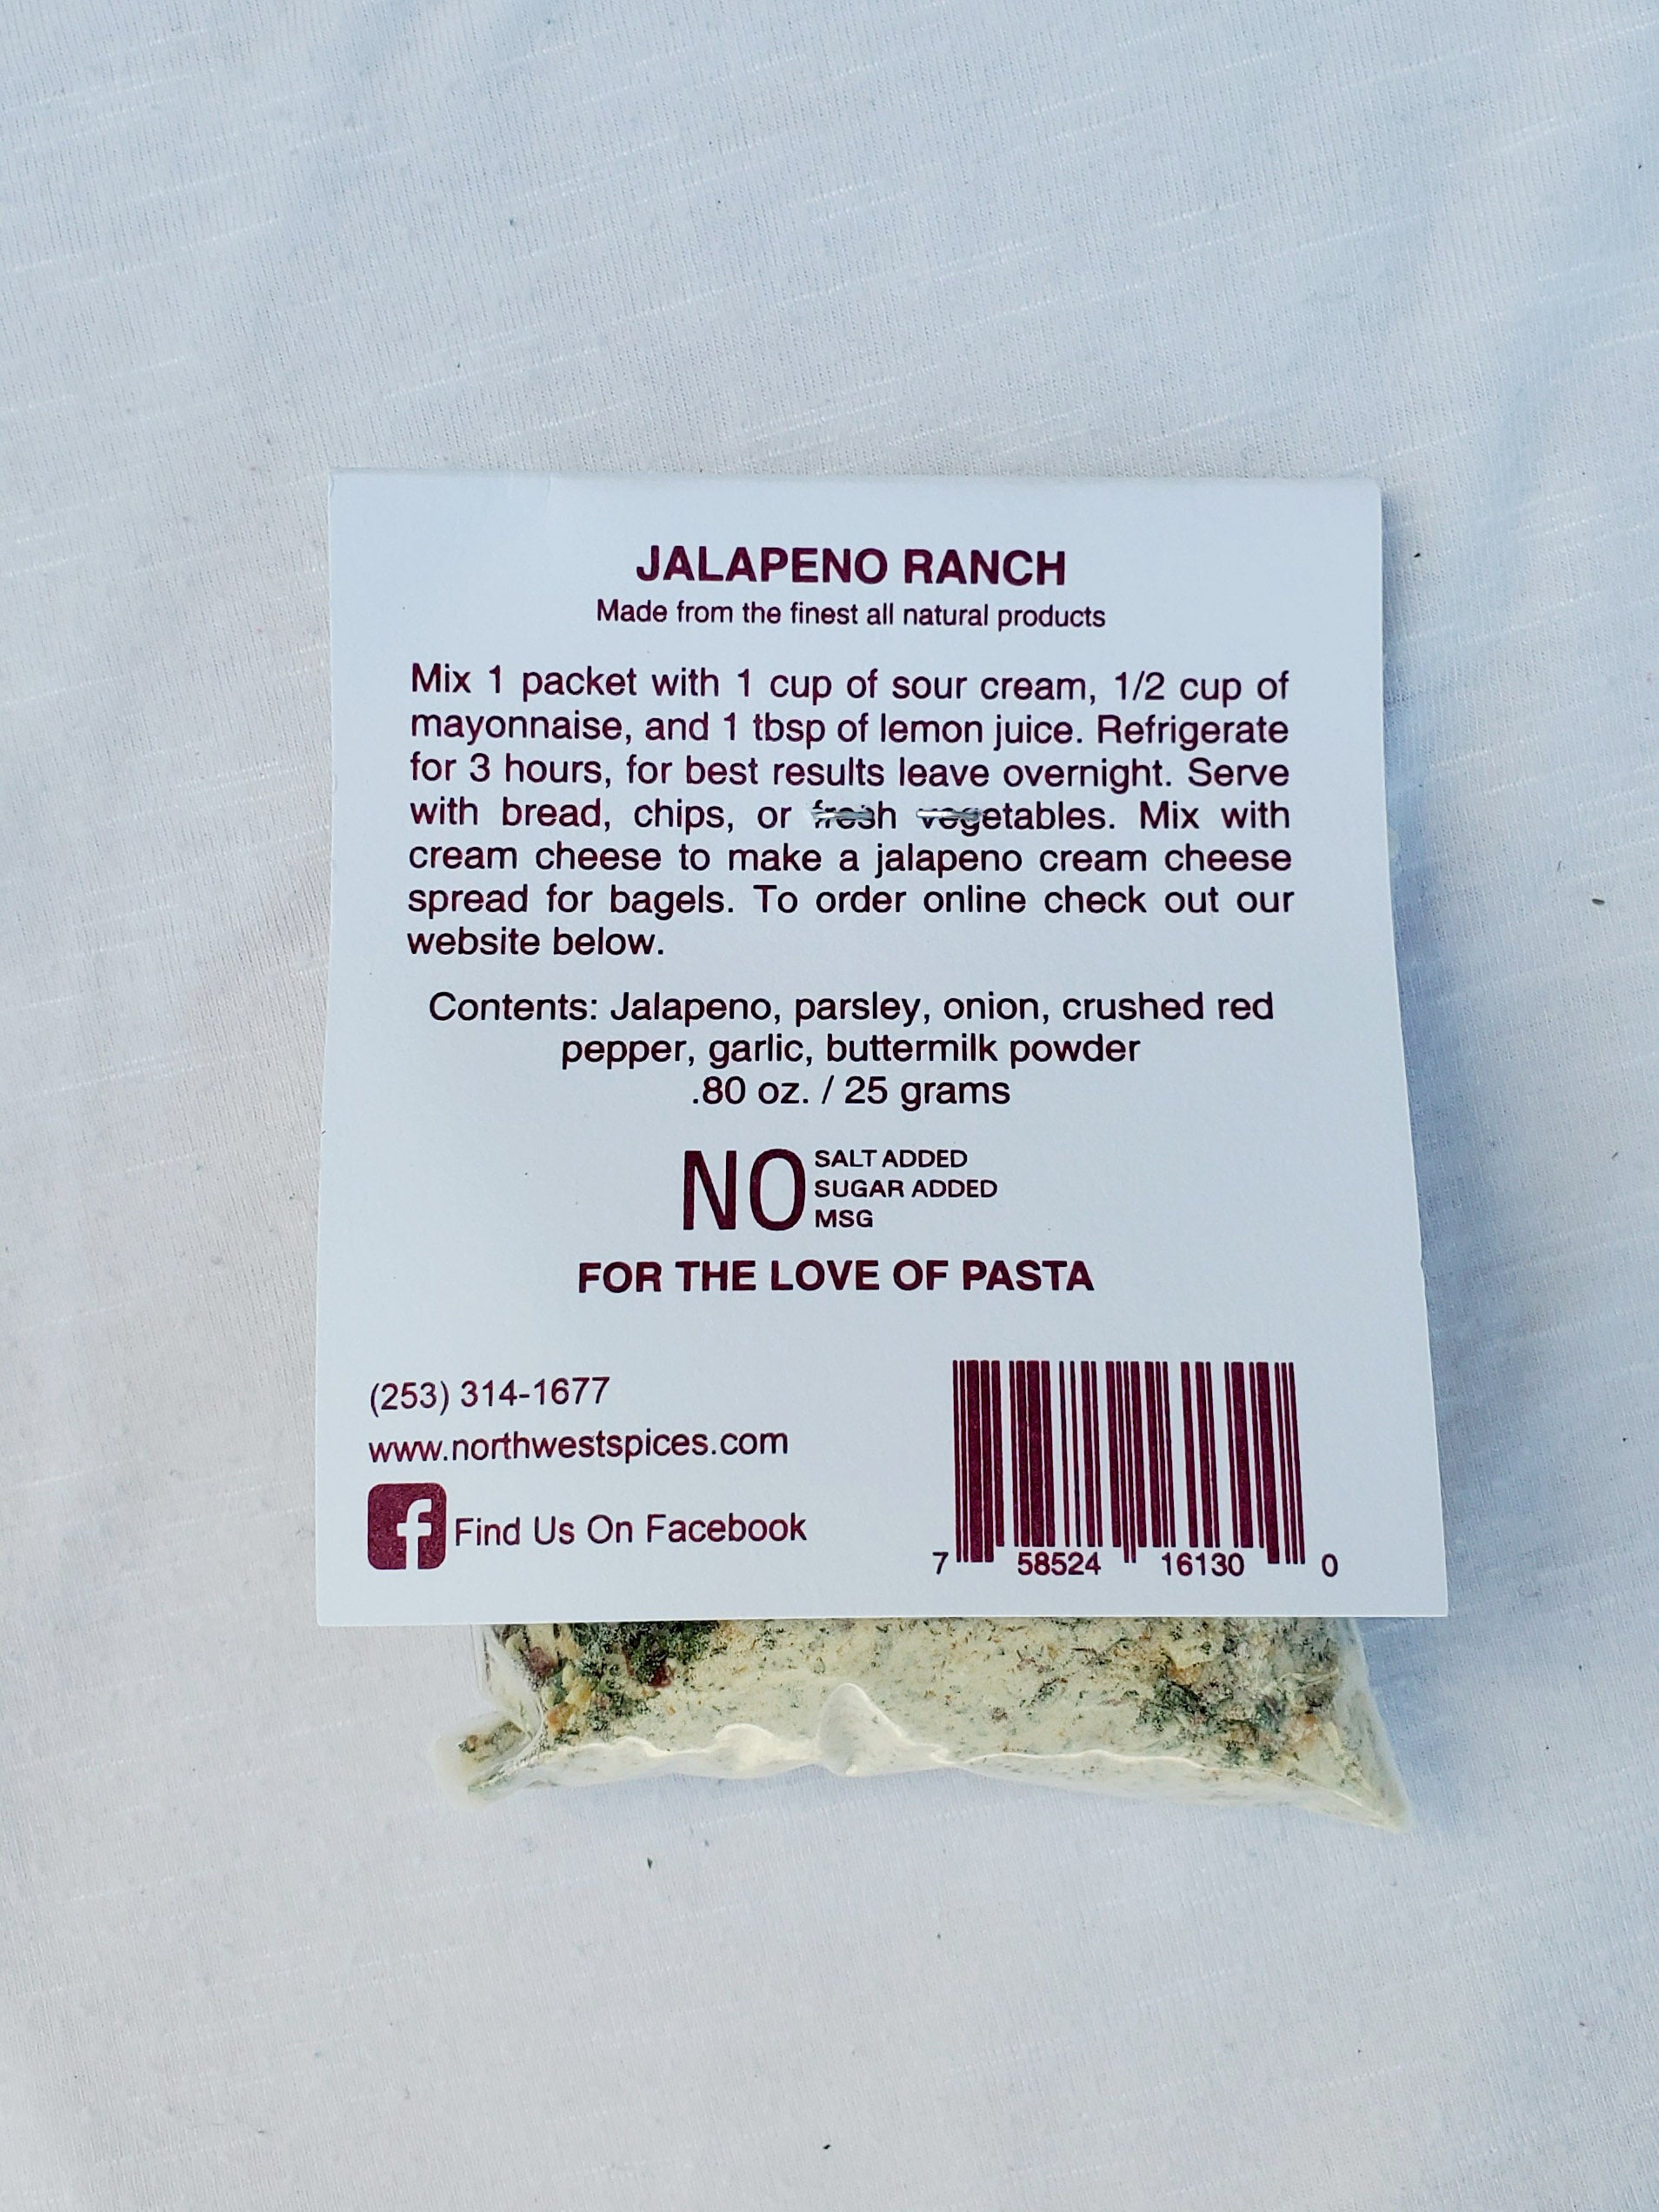 Jalapeno Ranch Spice Mix by Northwest Spices, Contains, Jalapeno, parsley, onion, crushed red pepper, garlic, buttermilk powder